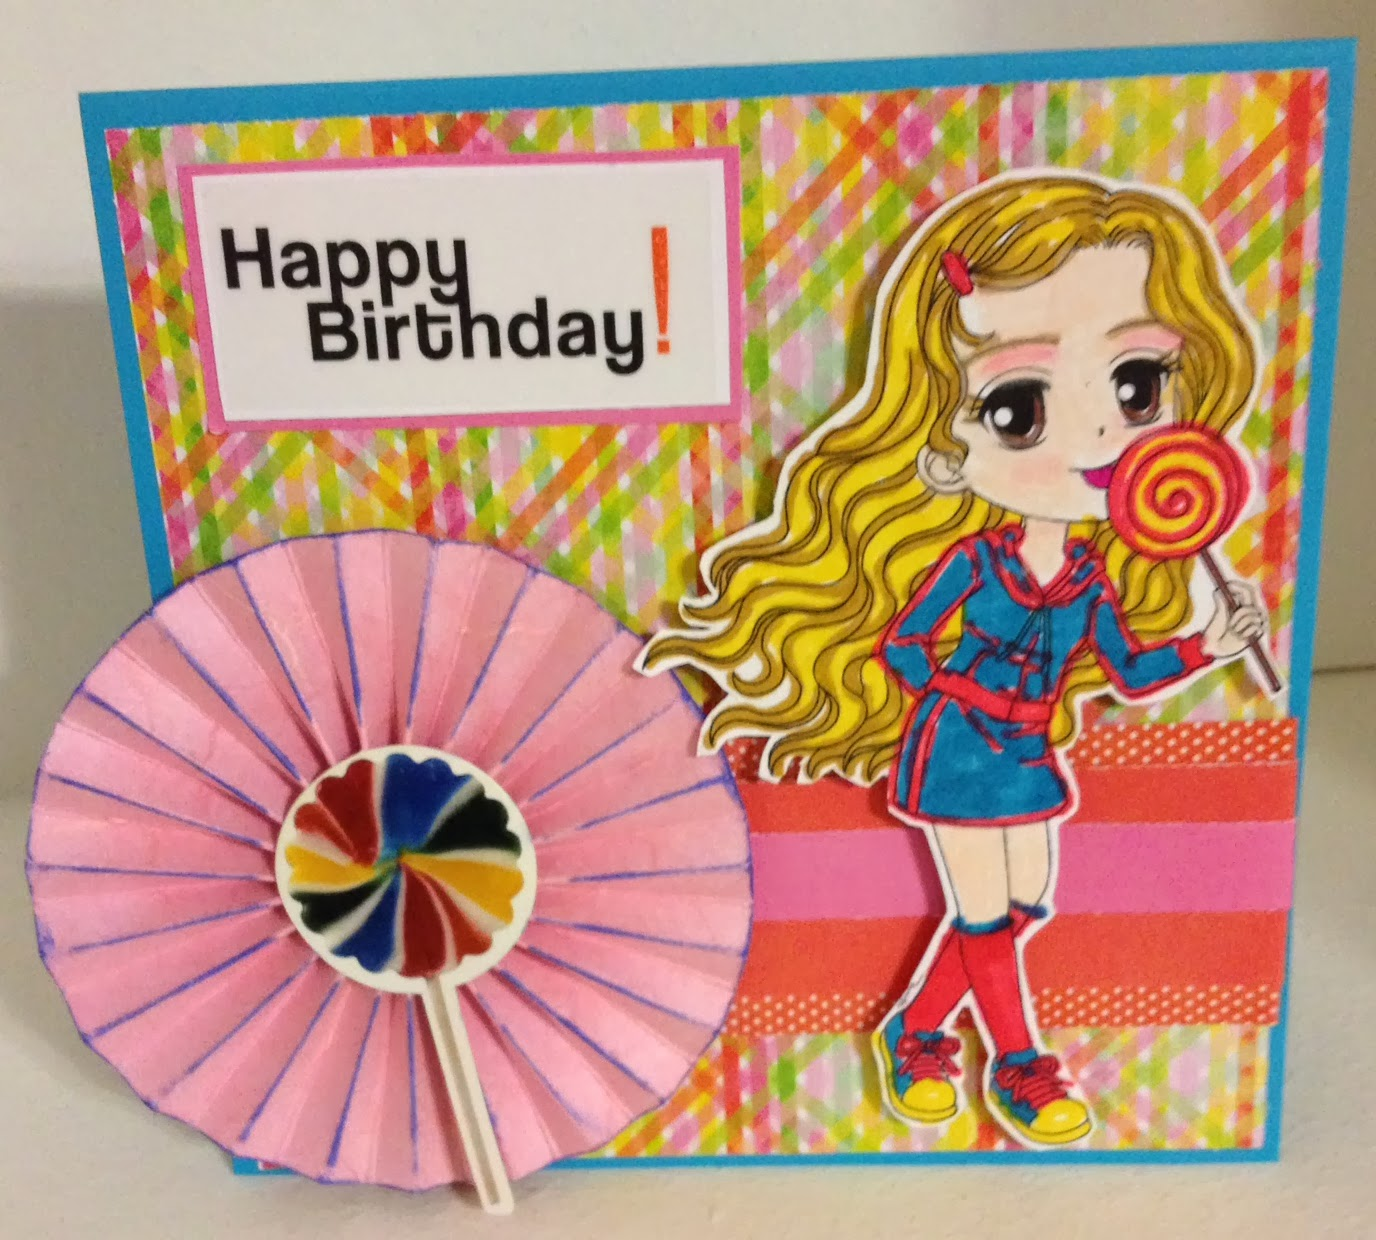 http://pennyraescreations.blogspot.com/p/lollypop-leslie-birthday-card.html